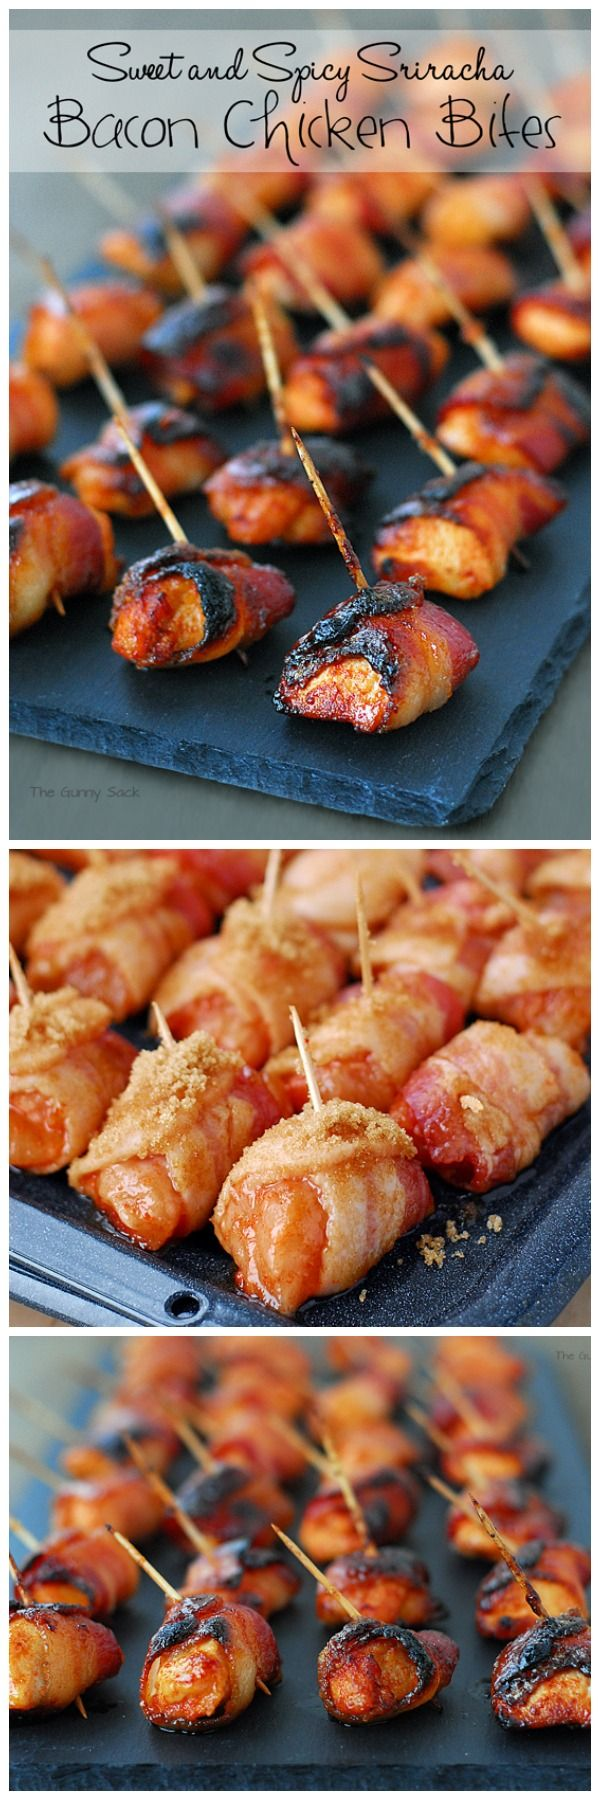 Sweet and Spicy Sriracha Bacon Chicken Bites! These are soooo GOOD